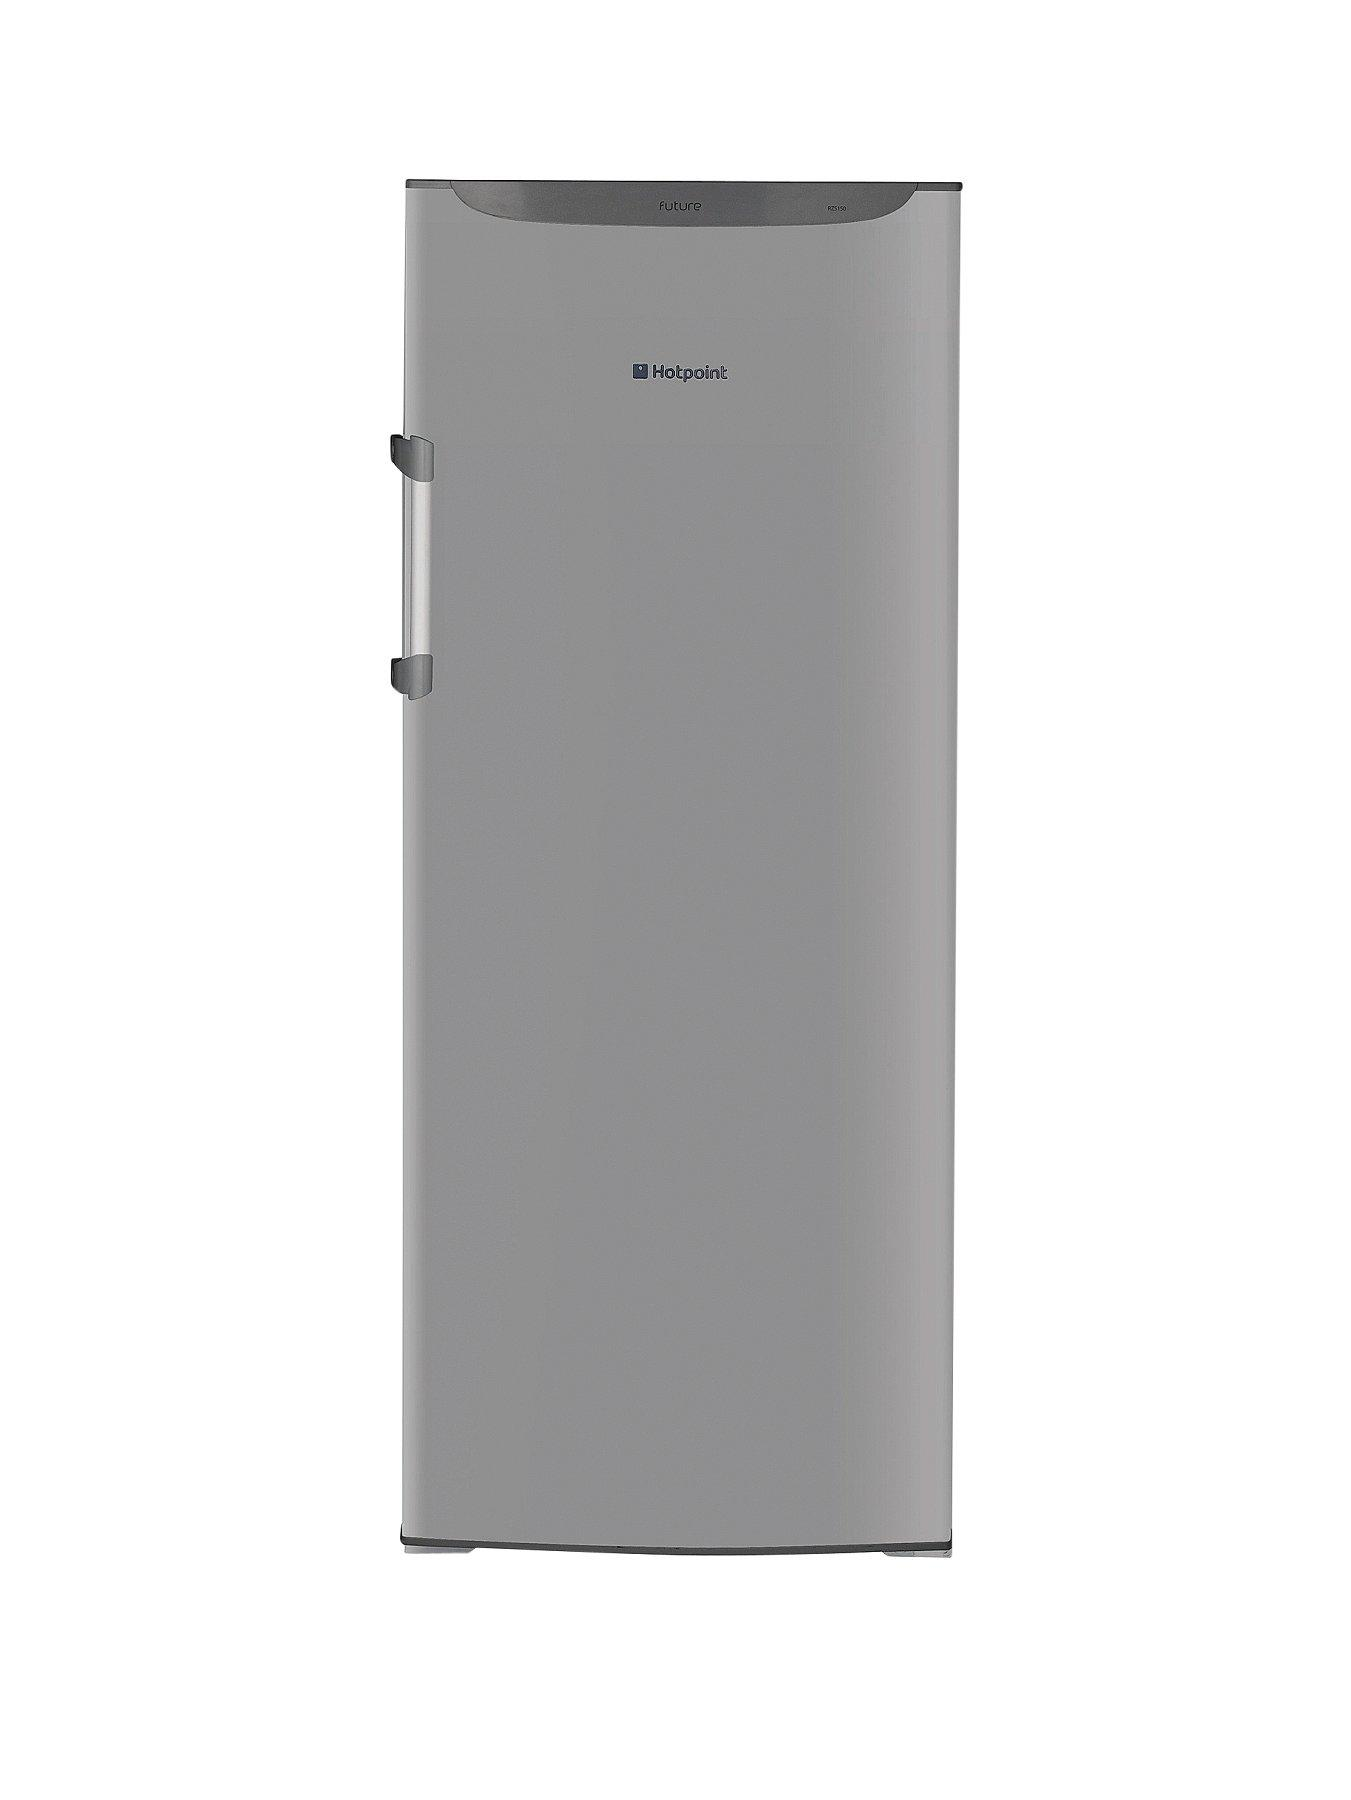 RZFM151G 60cm Over Counter Freezer - Graphite